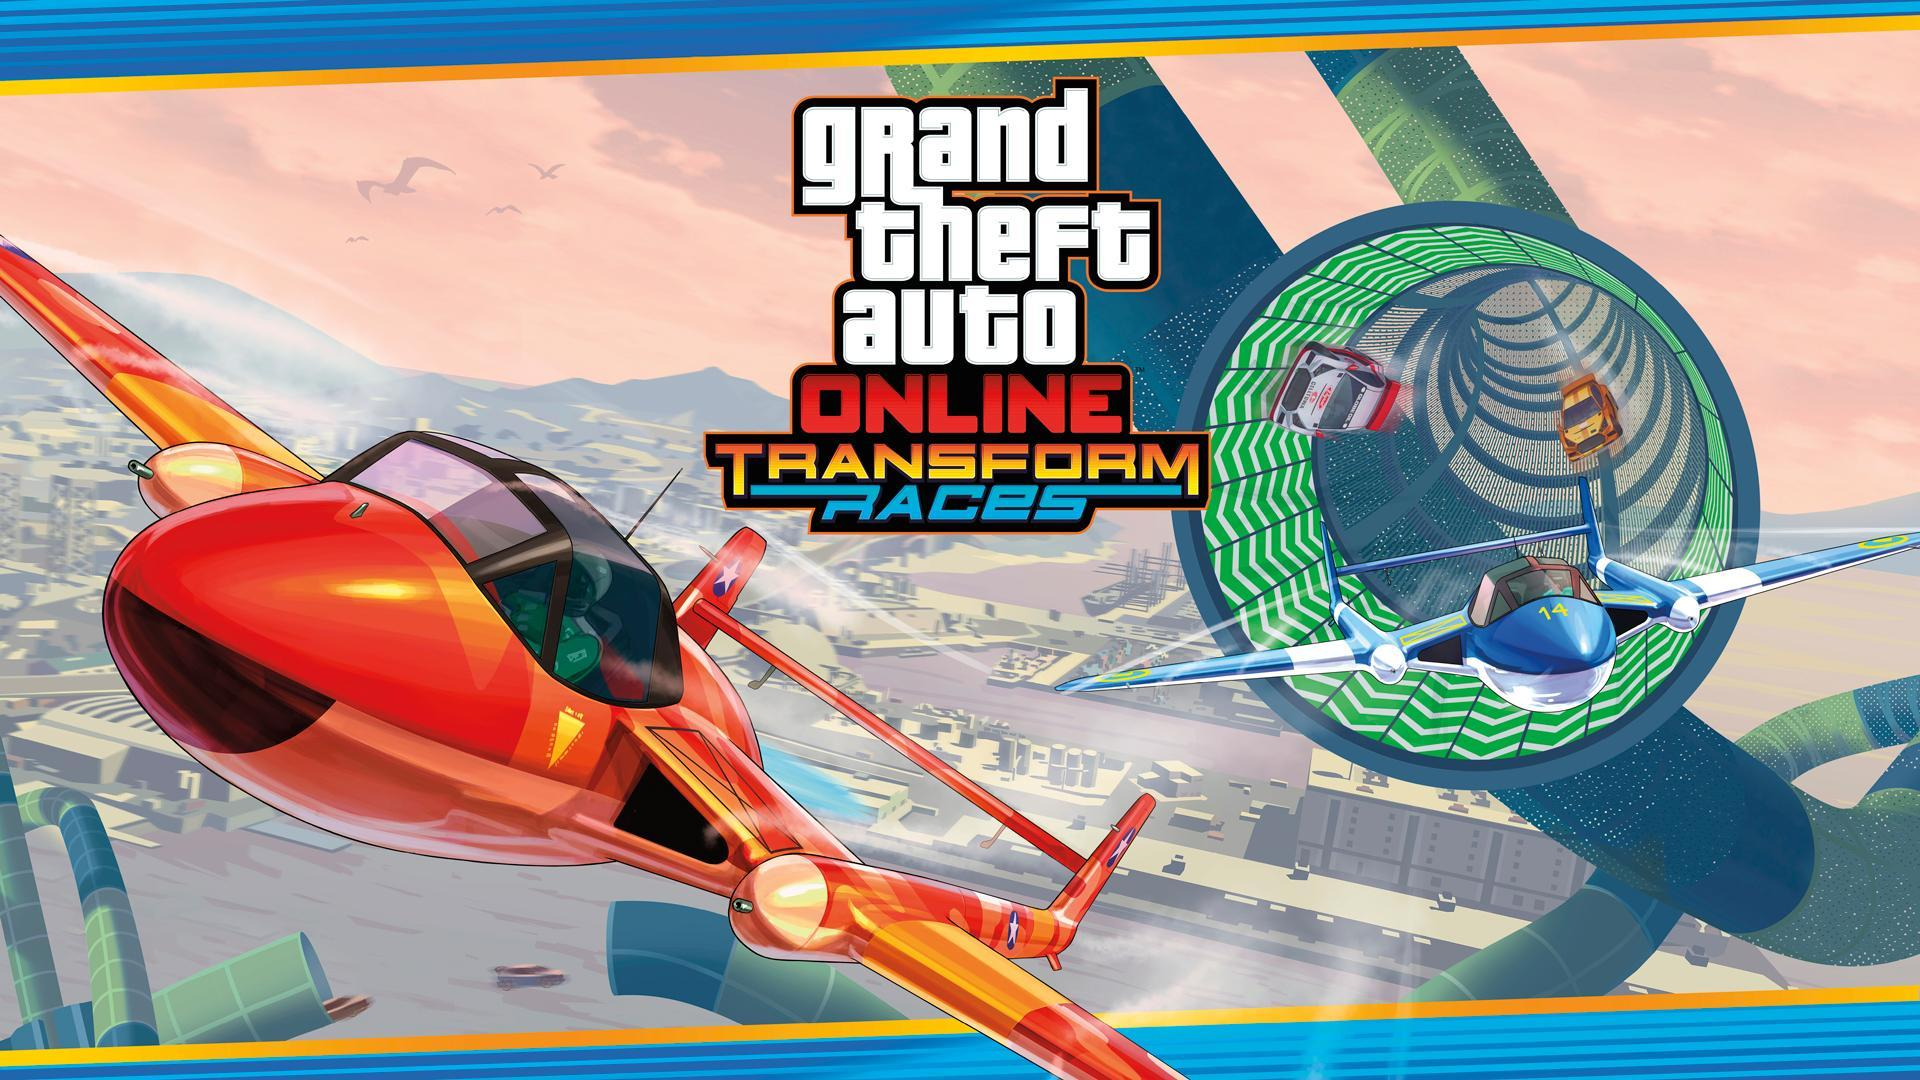 New Transform Races & Creator Updates in GTA Online